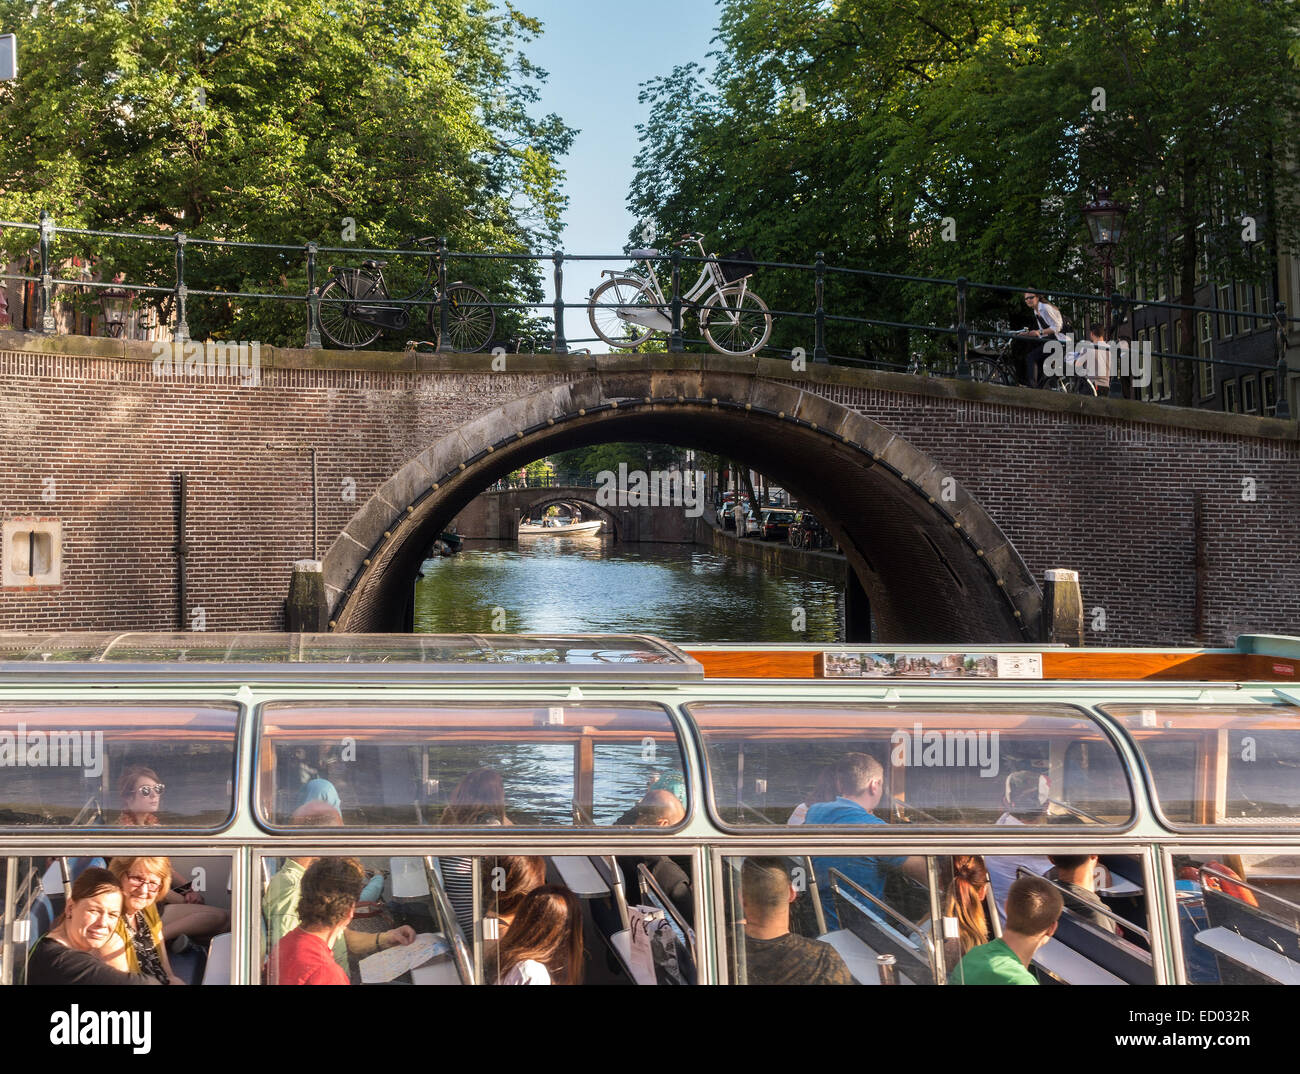 Amsterdam Canal The Seven Bridges of the Reguliersgracht seen from a canal cruise tour boat with tourists in the - Stock Image